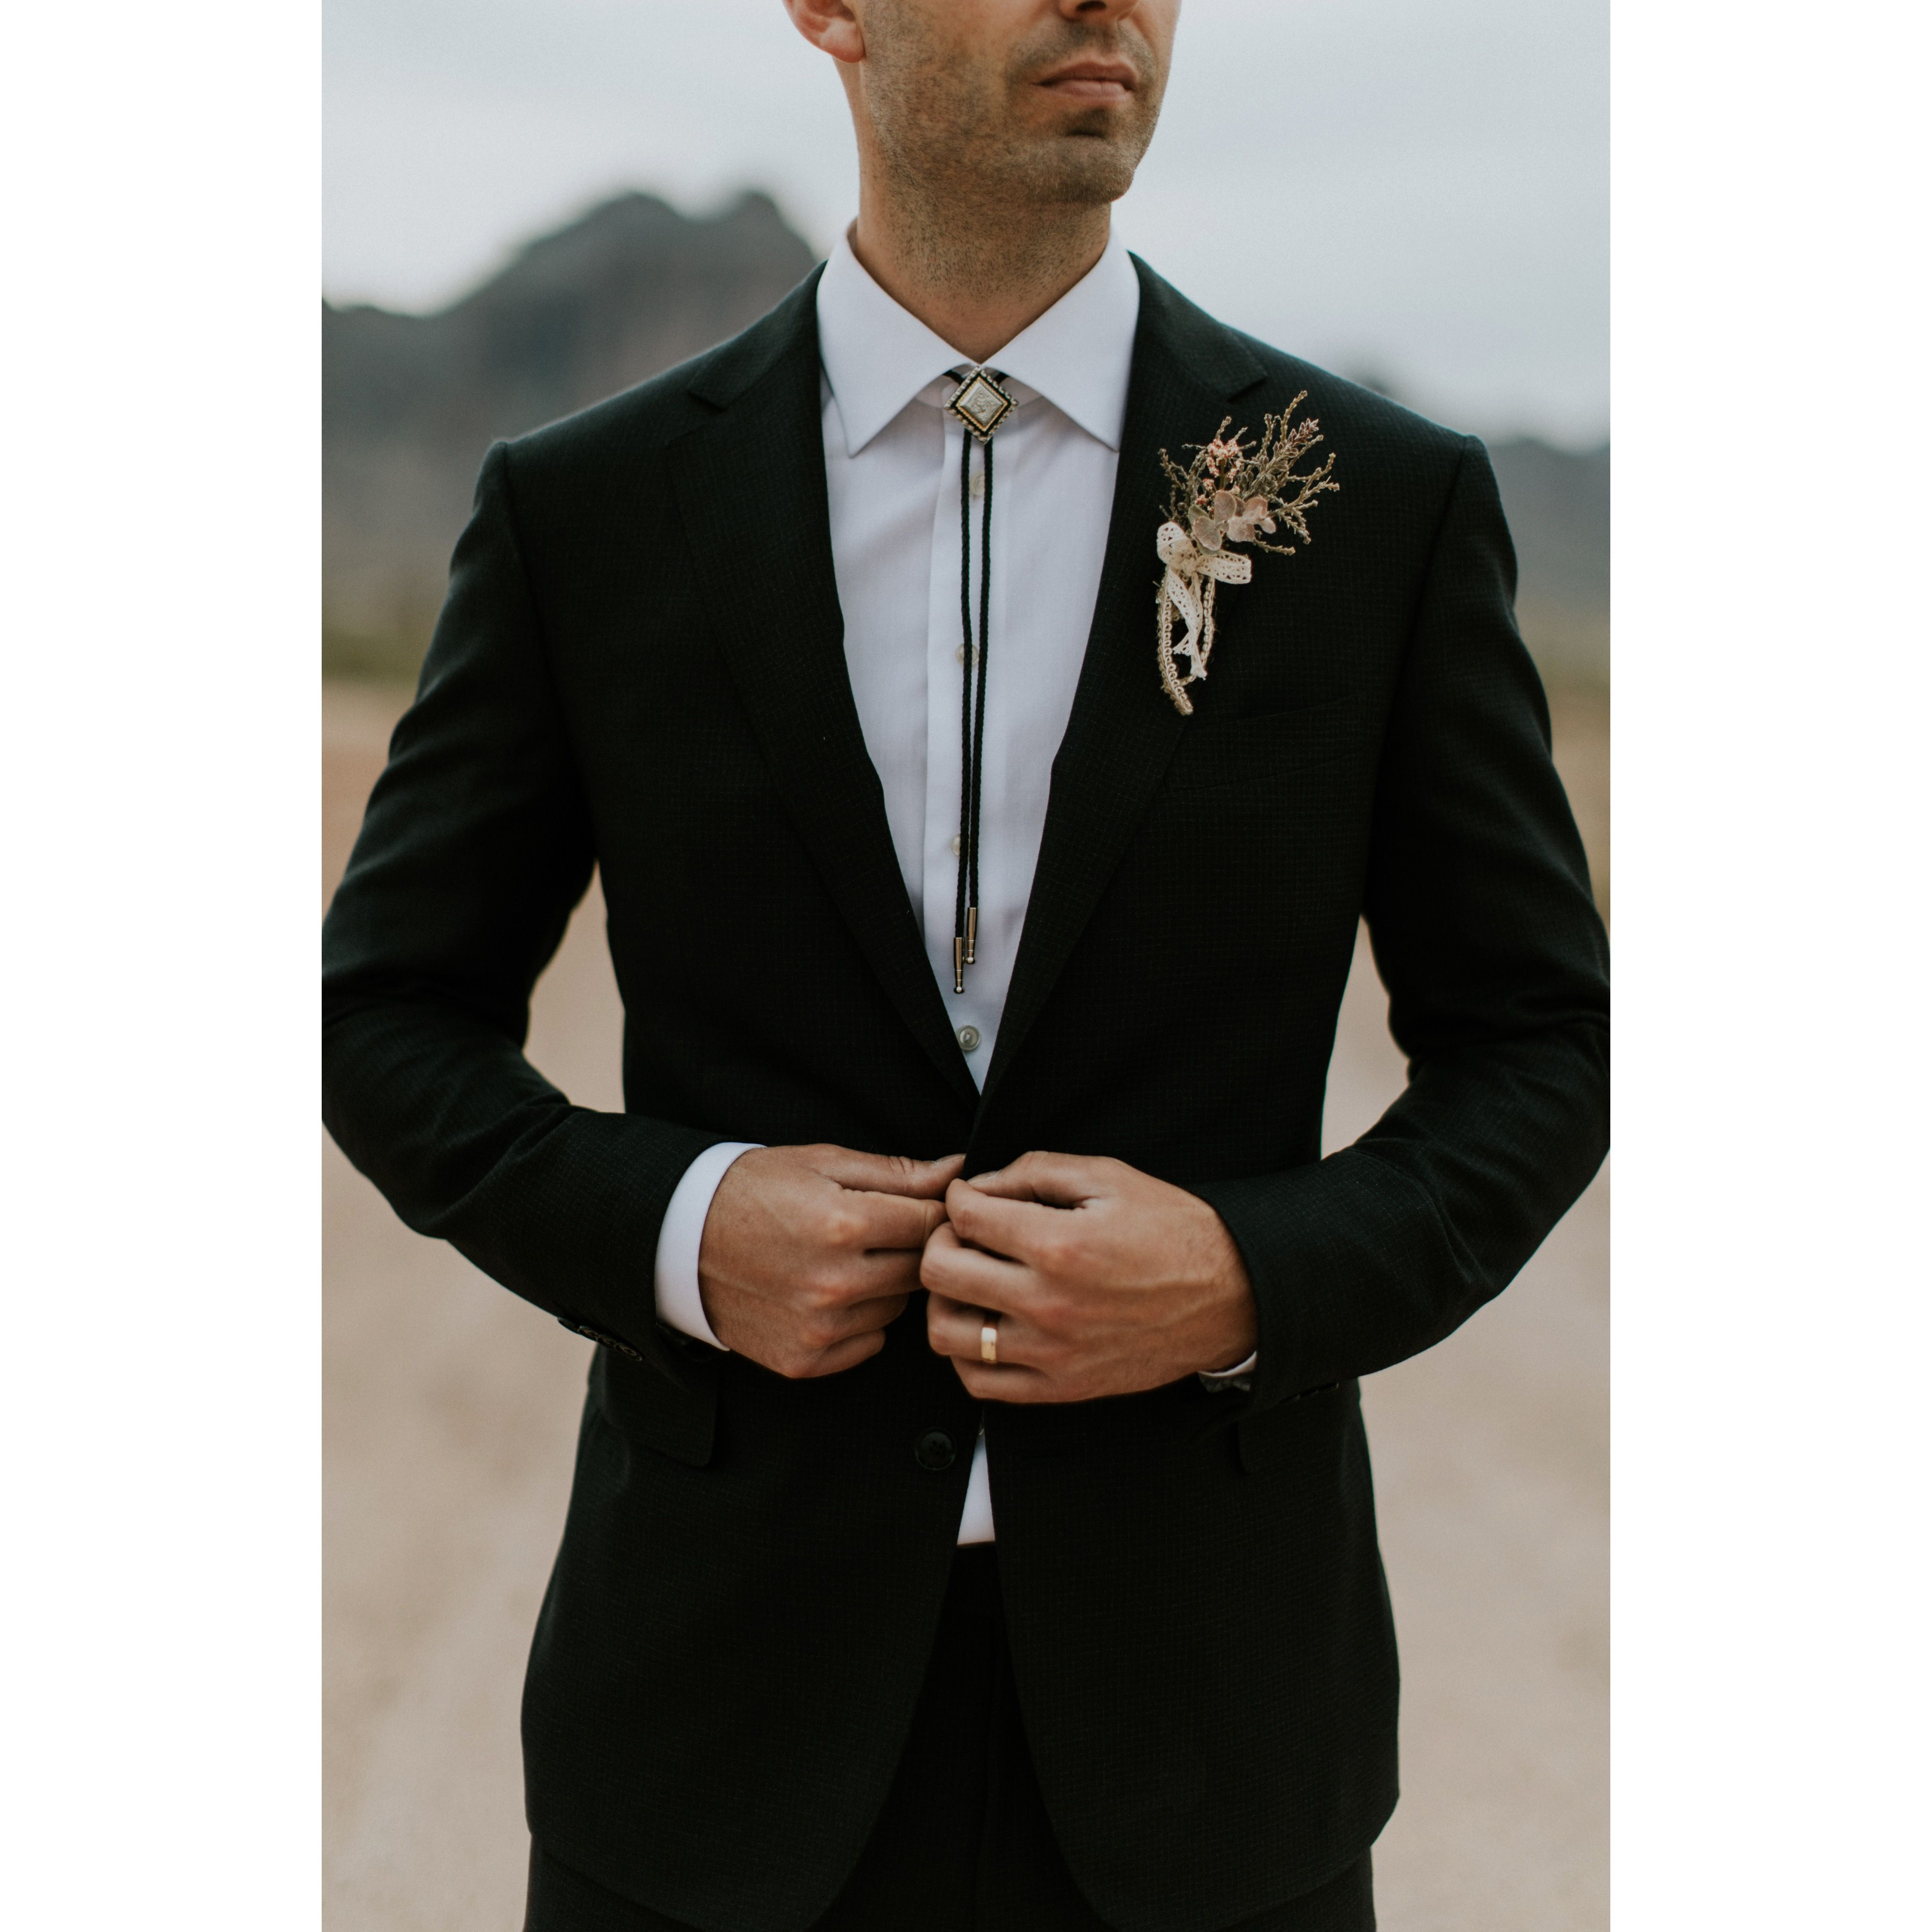 Bolo tie boutonniere southwest groom style photo by